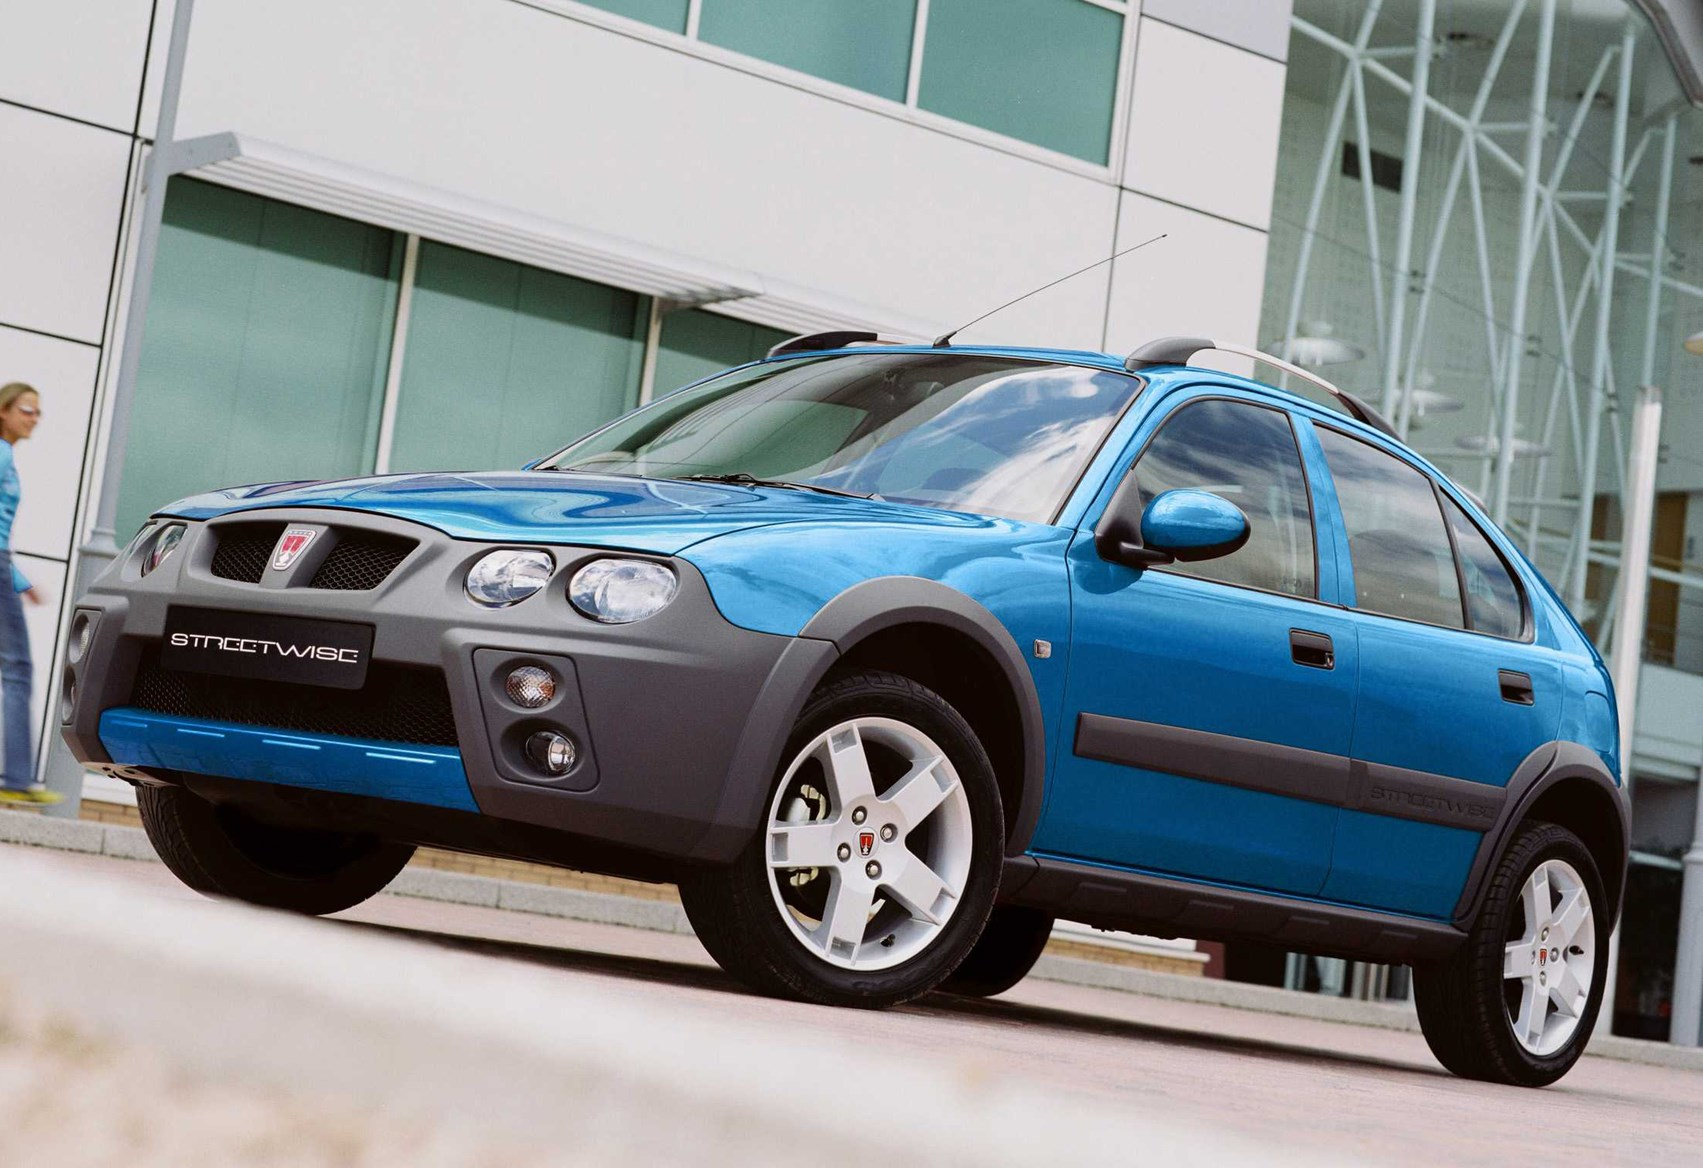 Rover streetwise photo - 2